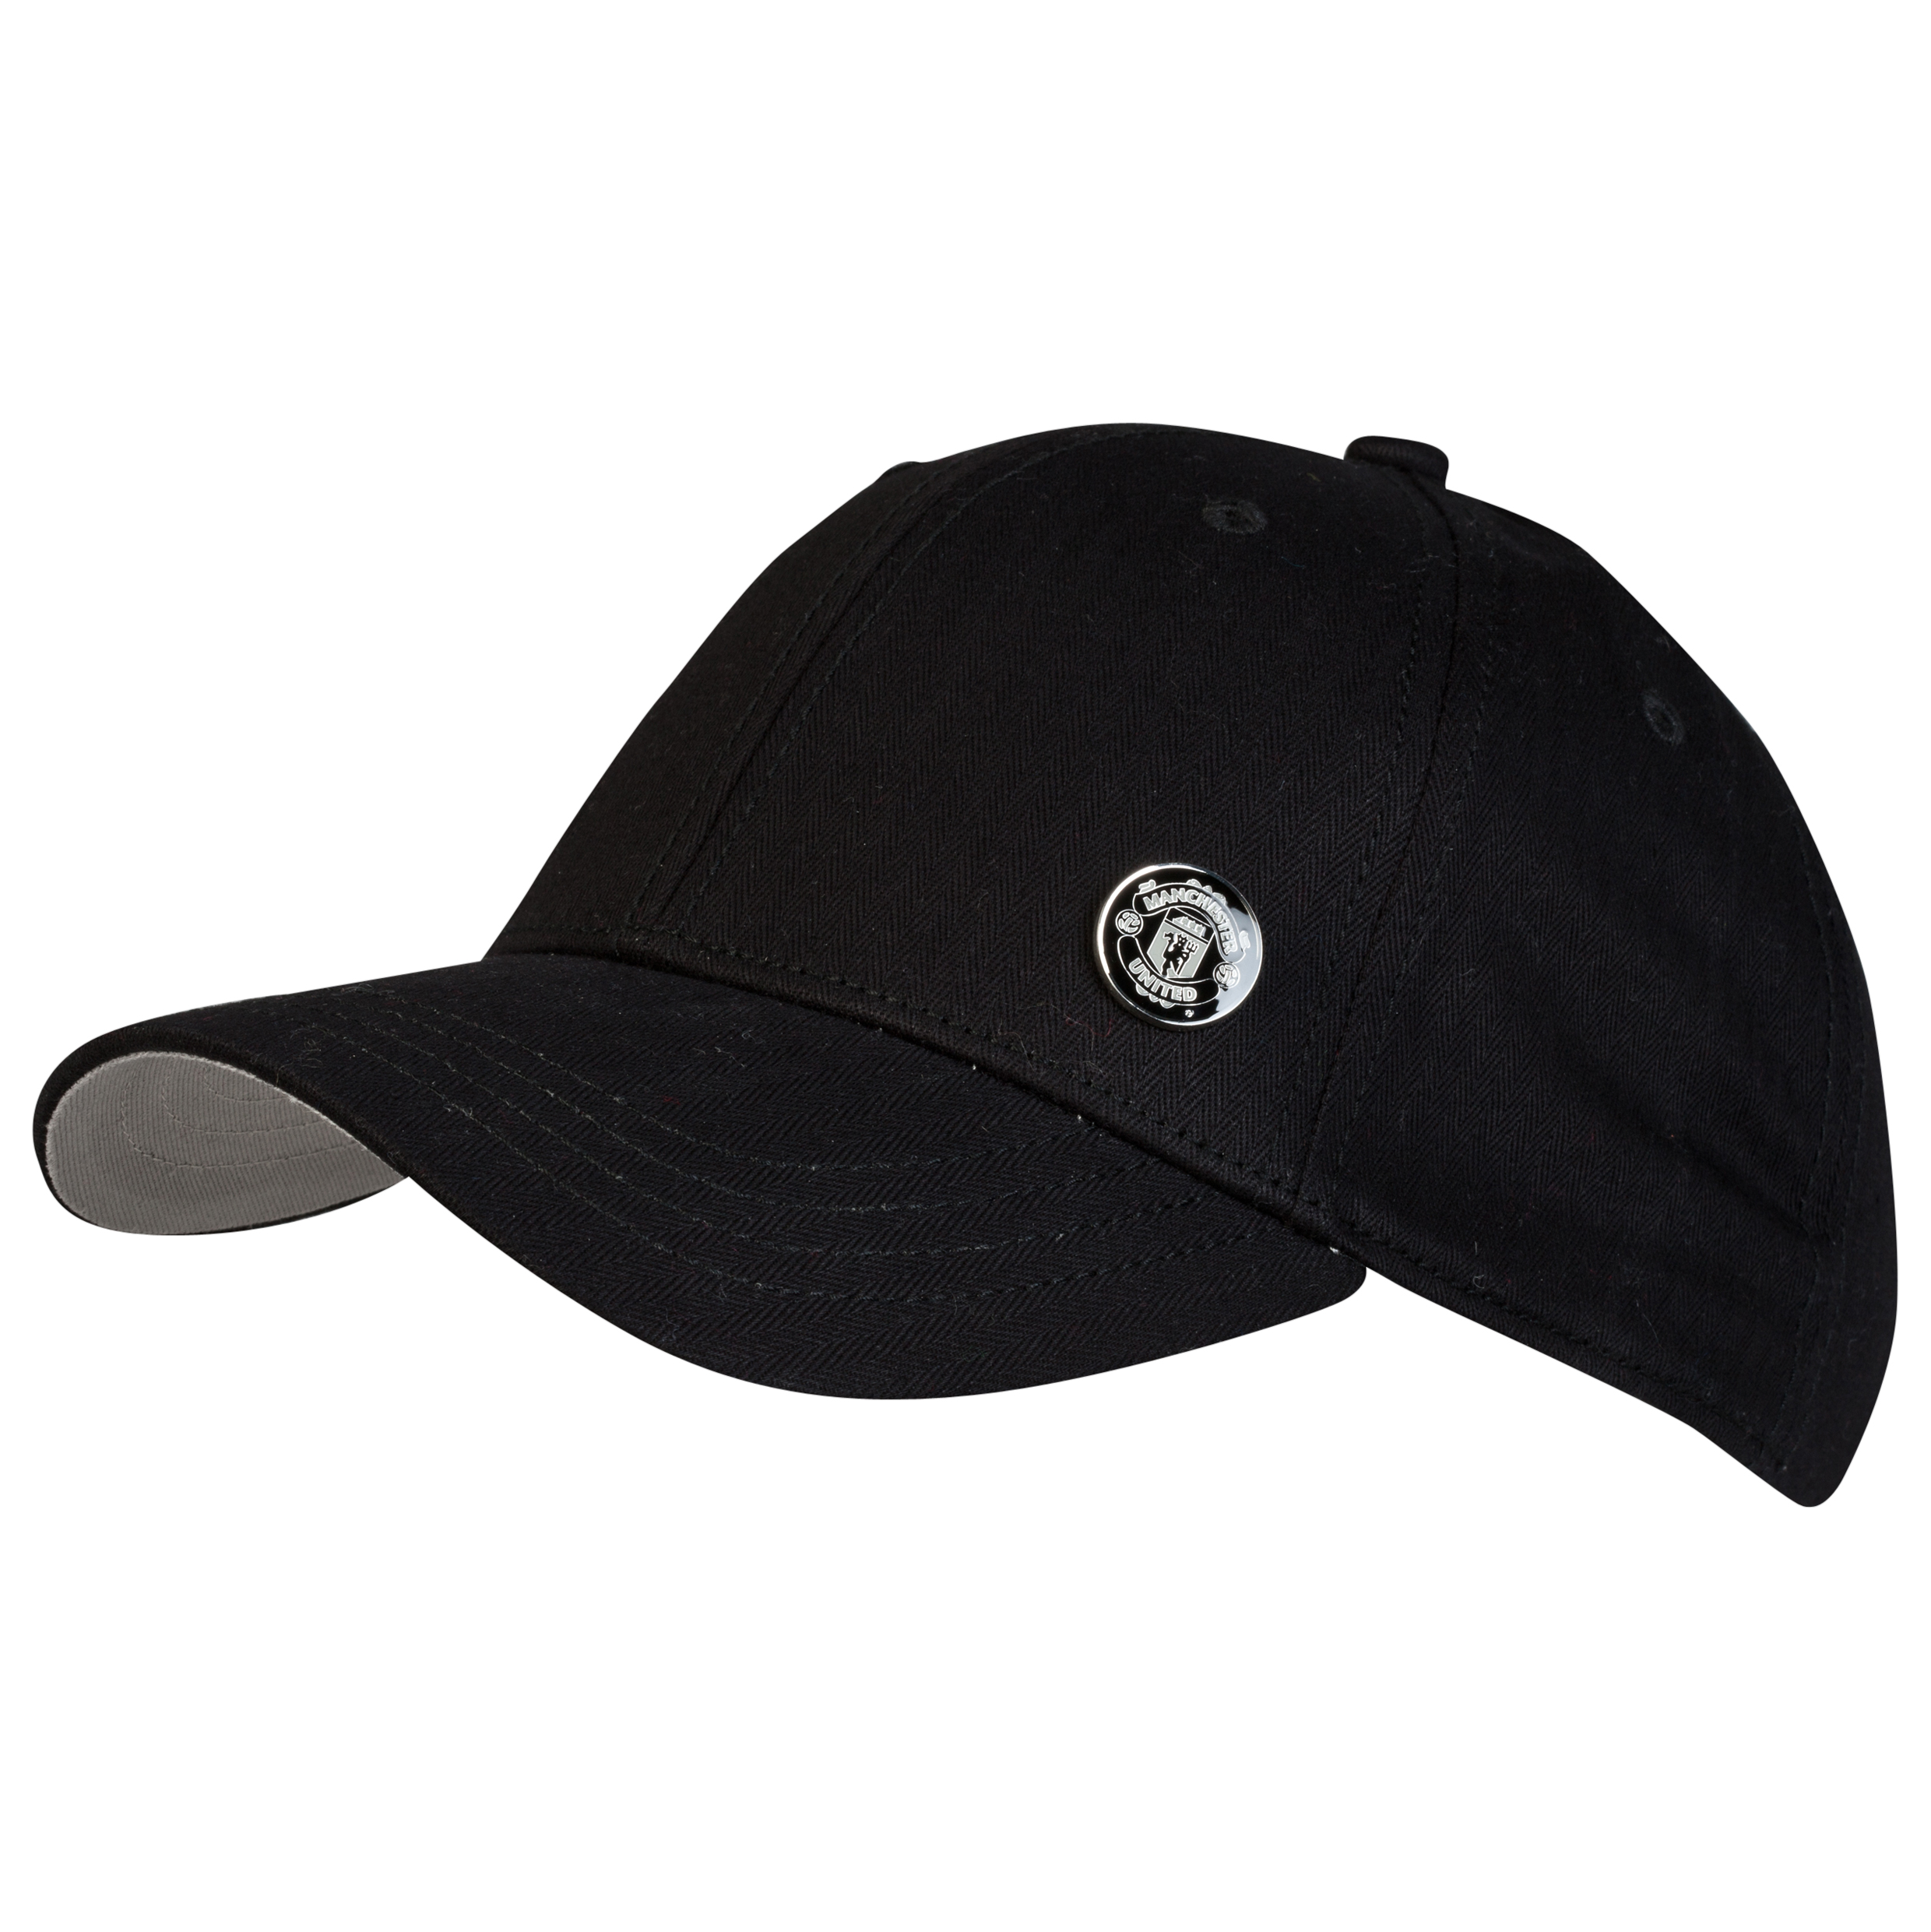 Manchester United Herringbone Baseball Cap - Adult Black